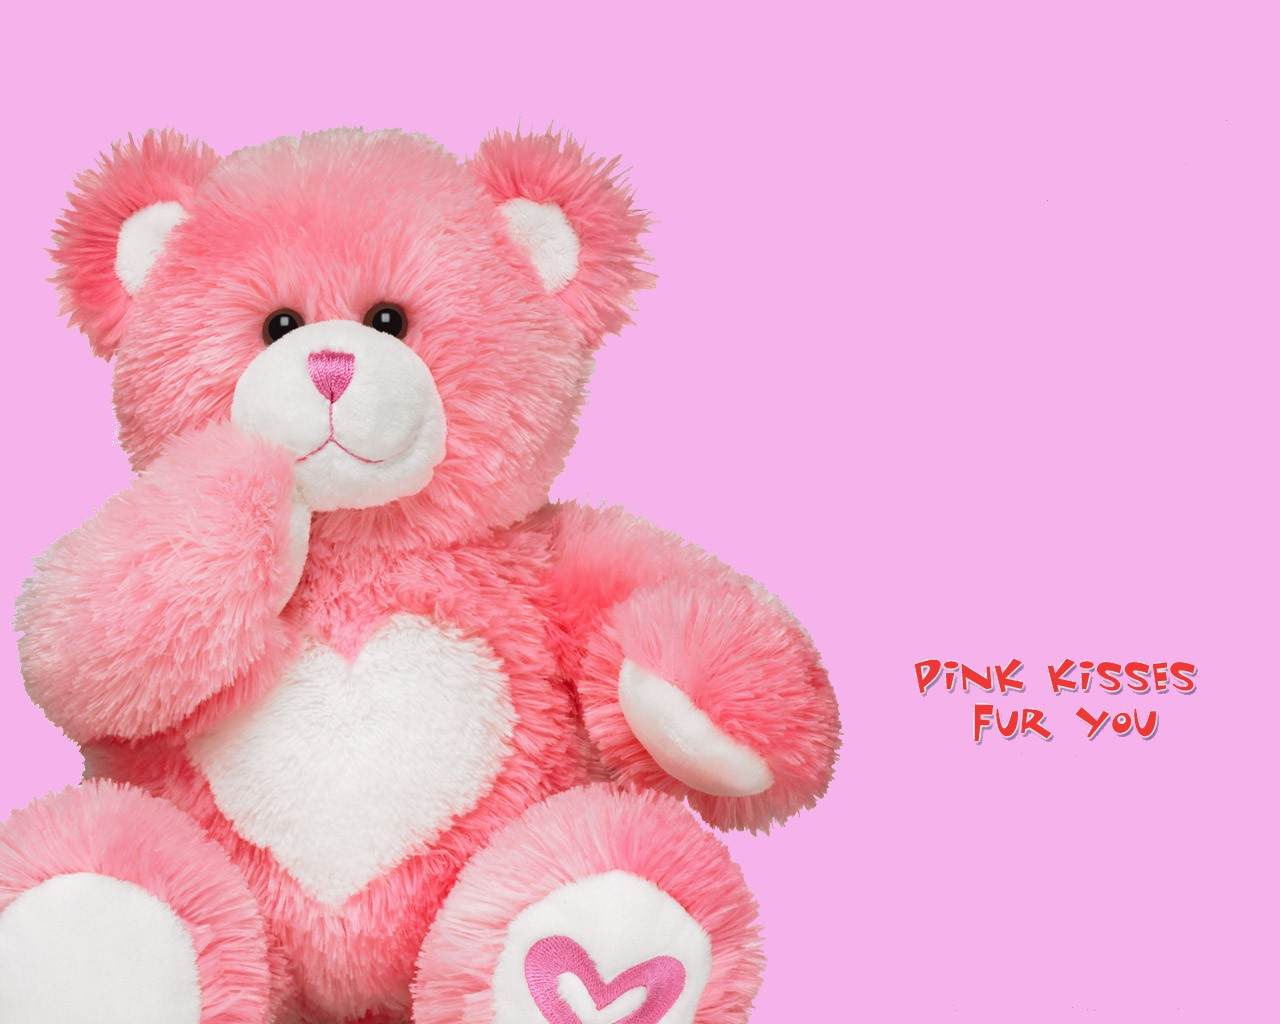 Teddy bear with love images - photo#15